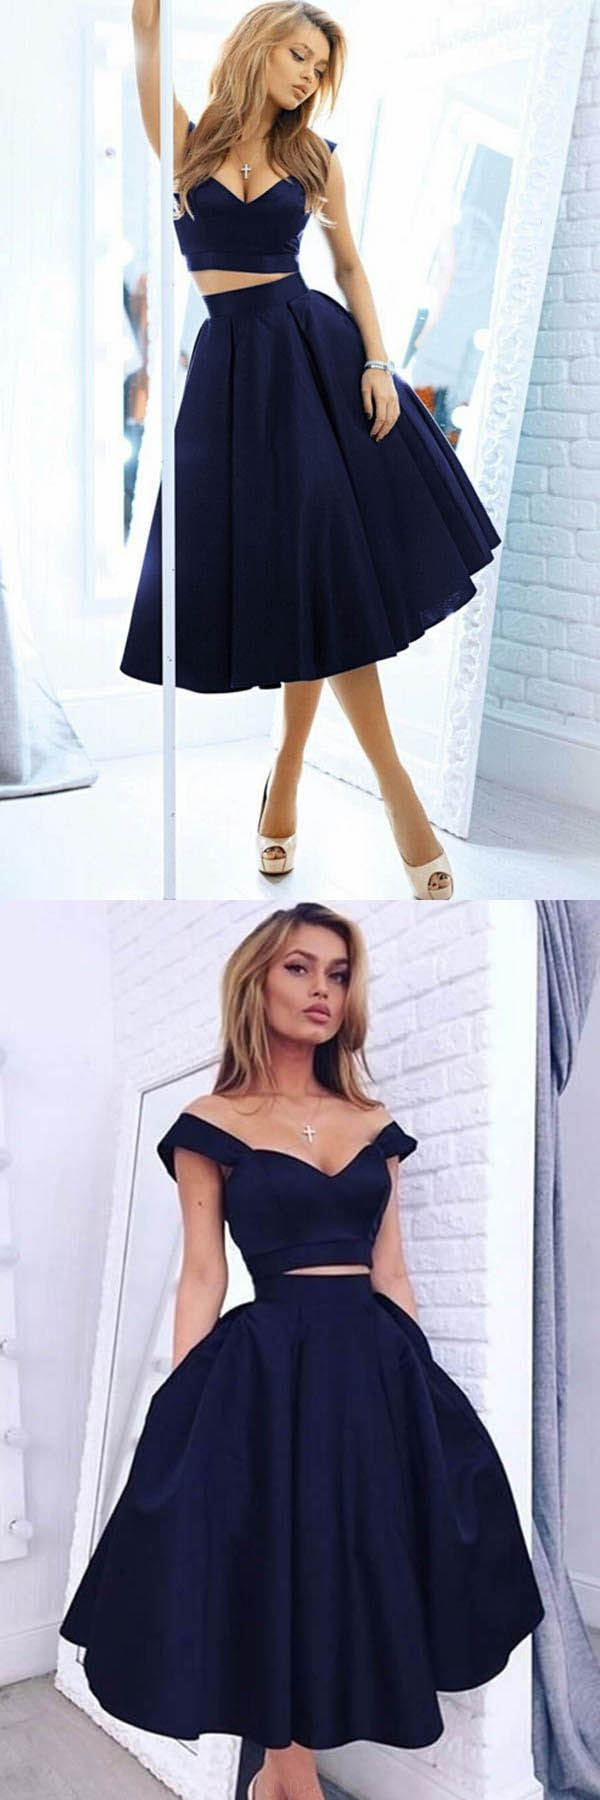 Customized substantial blue prom dresses chic off the shoulder navy